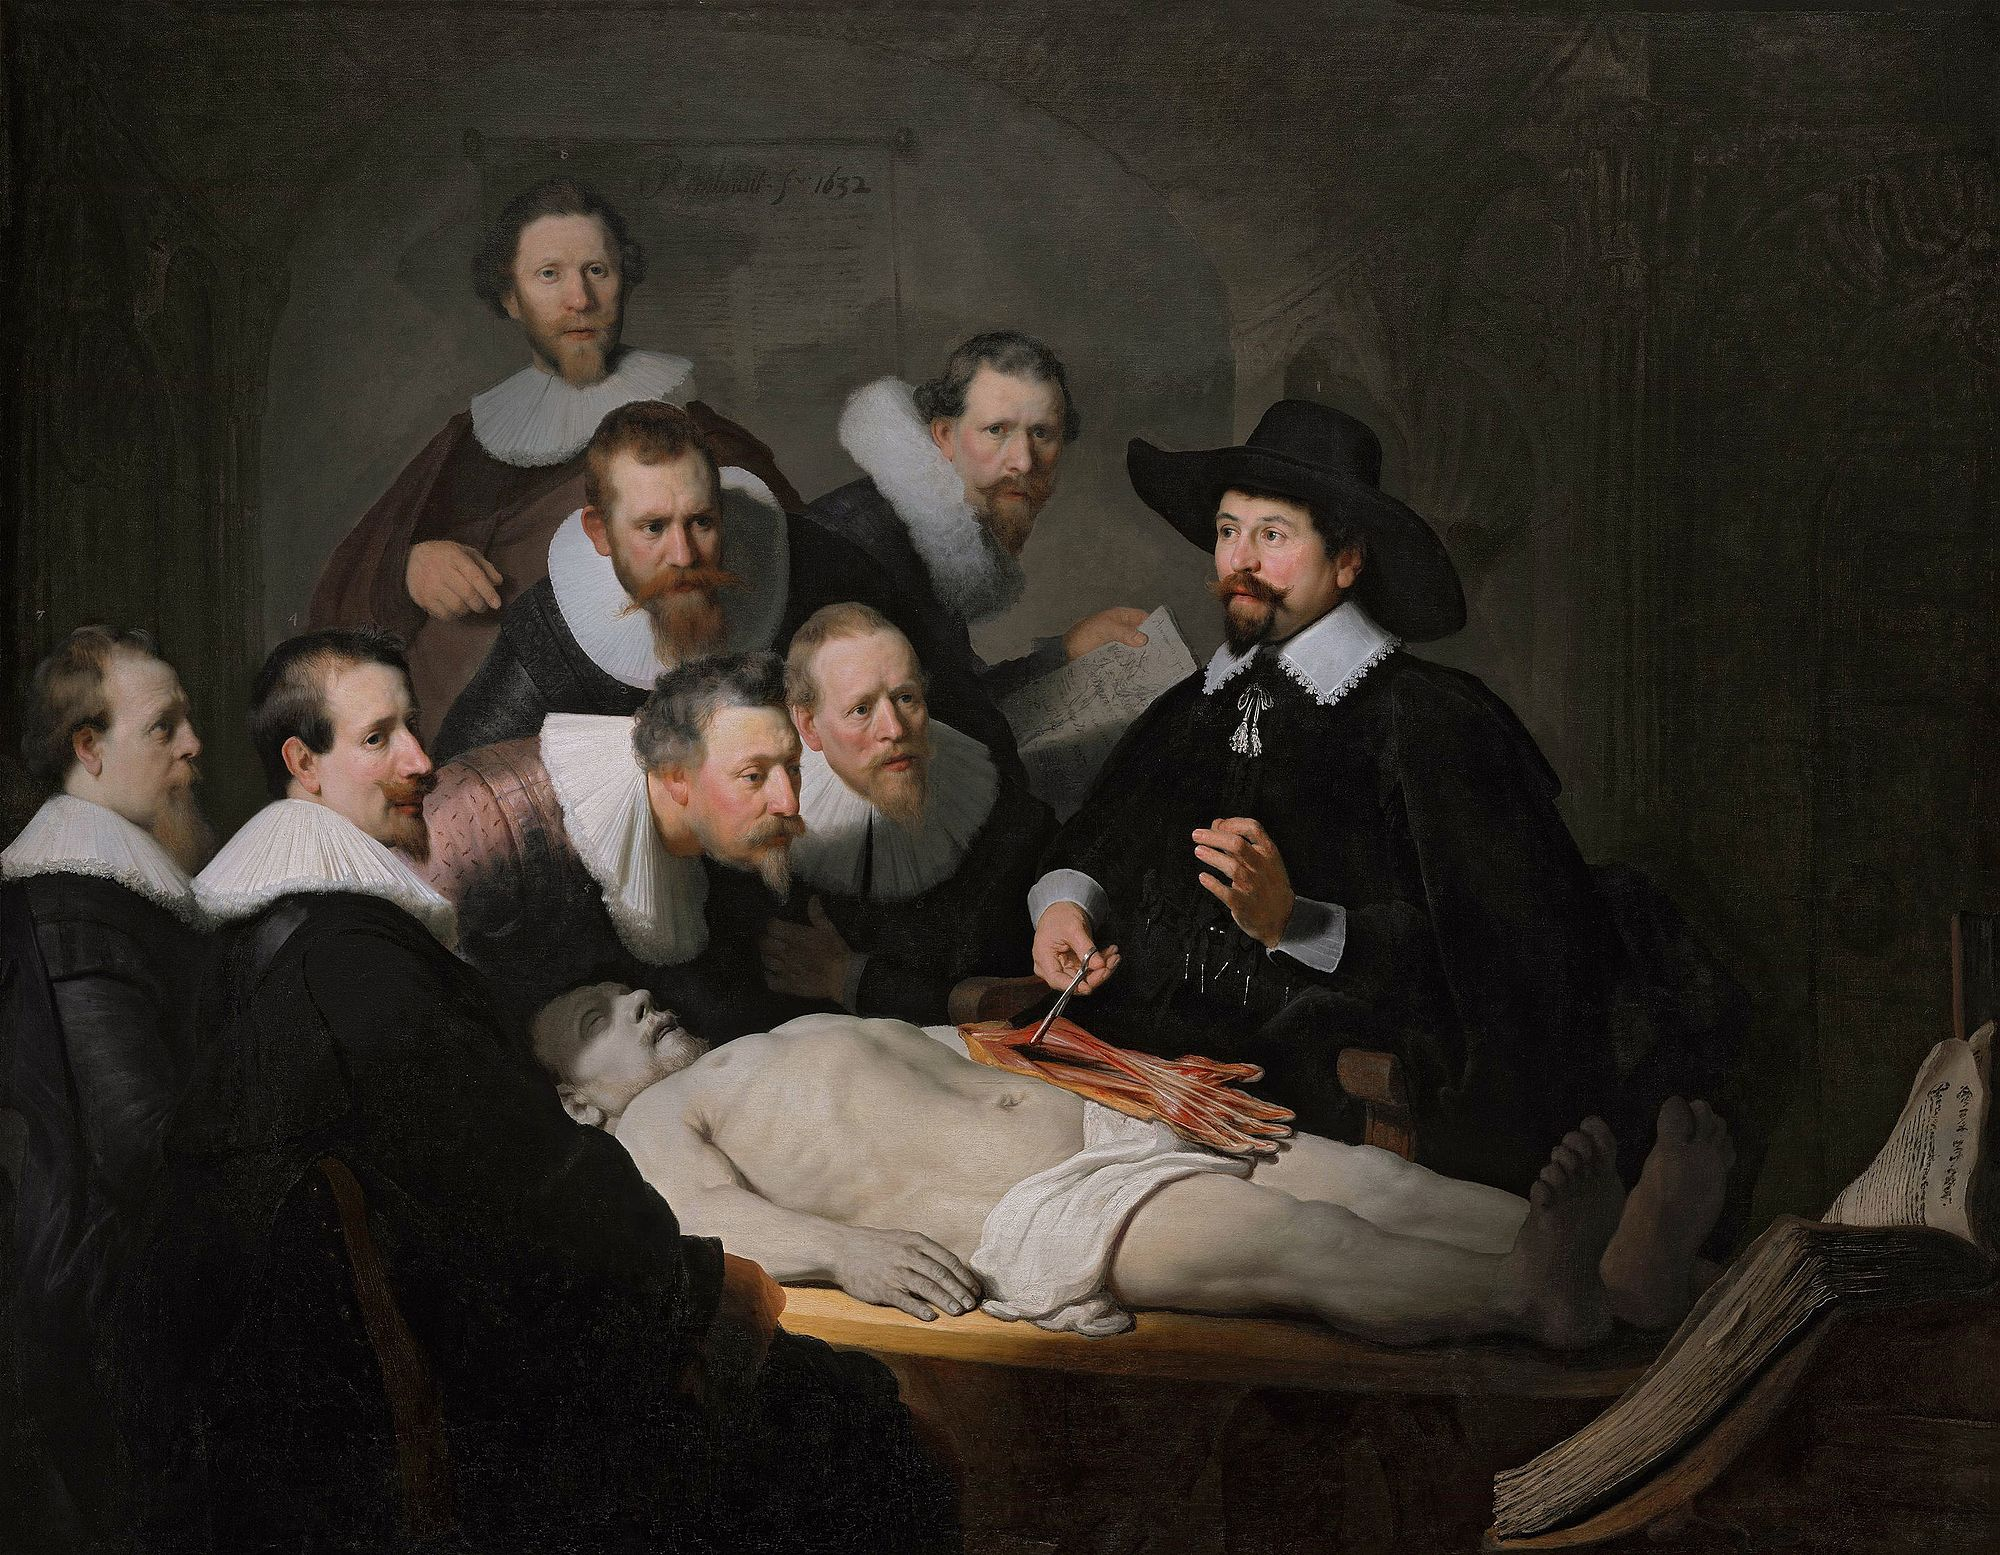 The Anatomy Lesson of Dr. Nicolaes Tulp [Rembrandt] | Sartle - Rogue ...